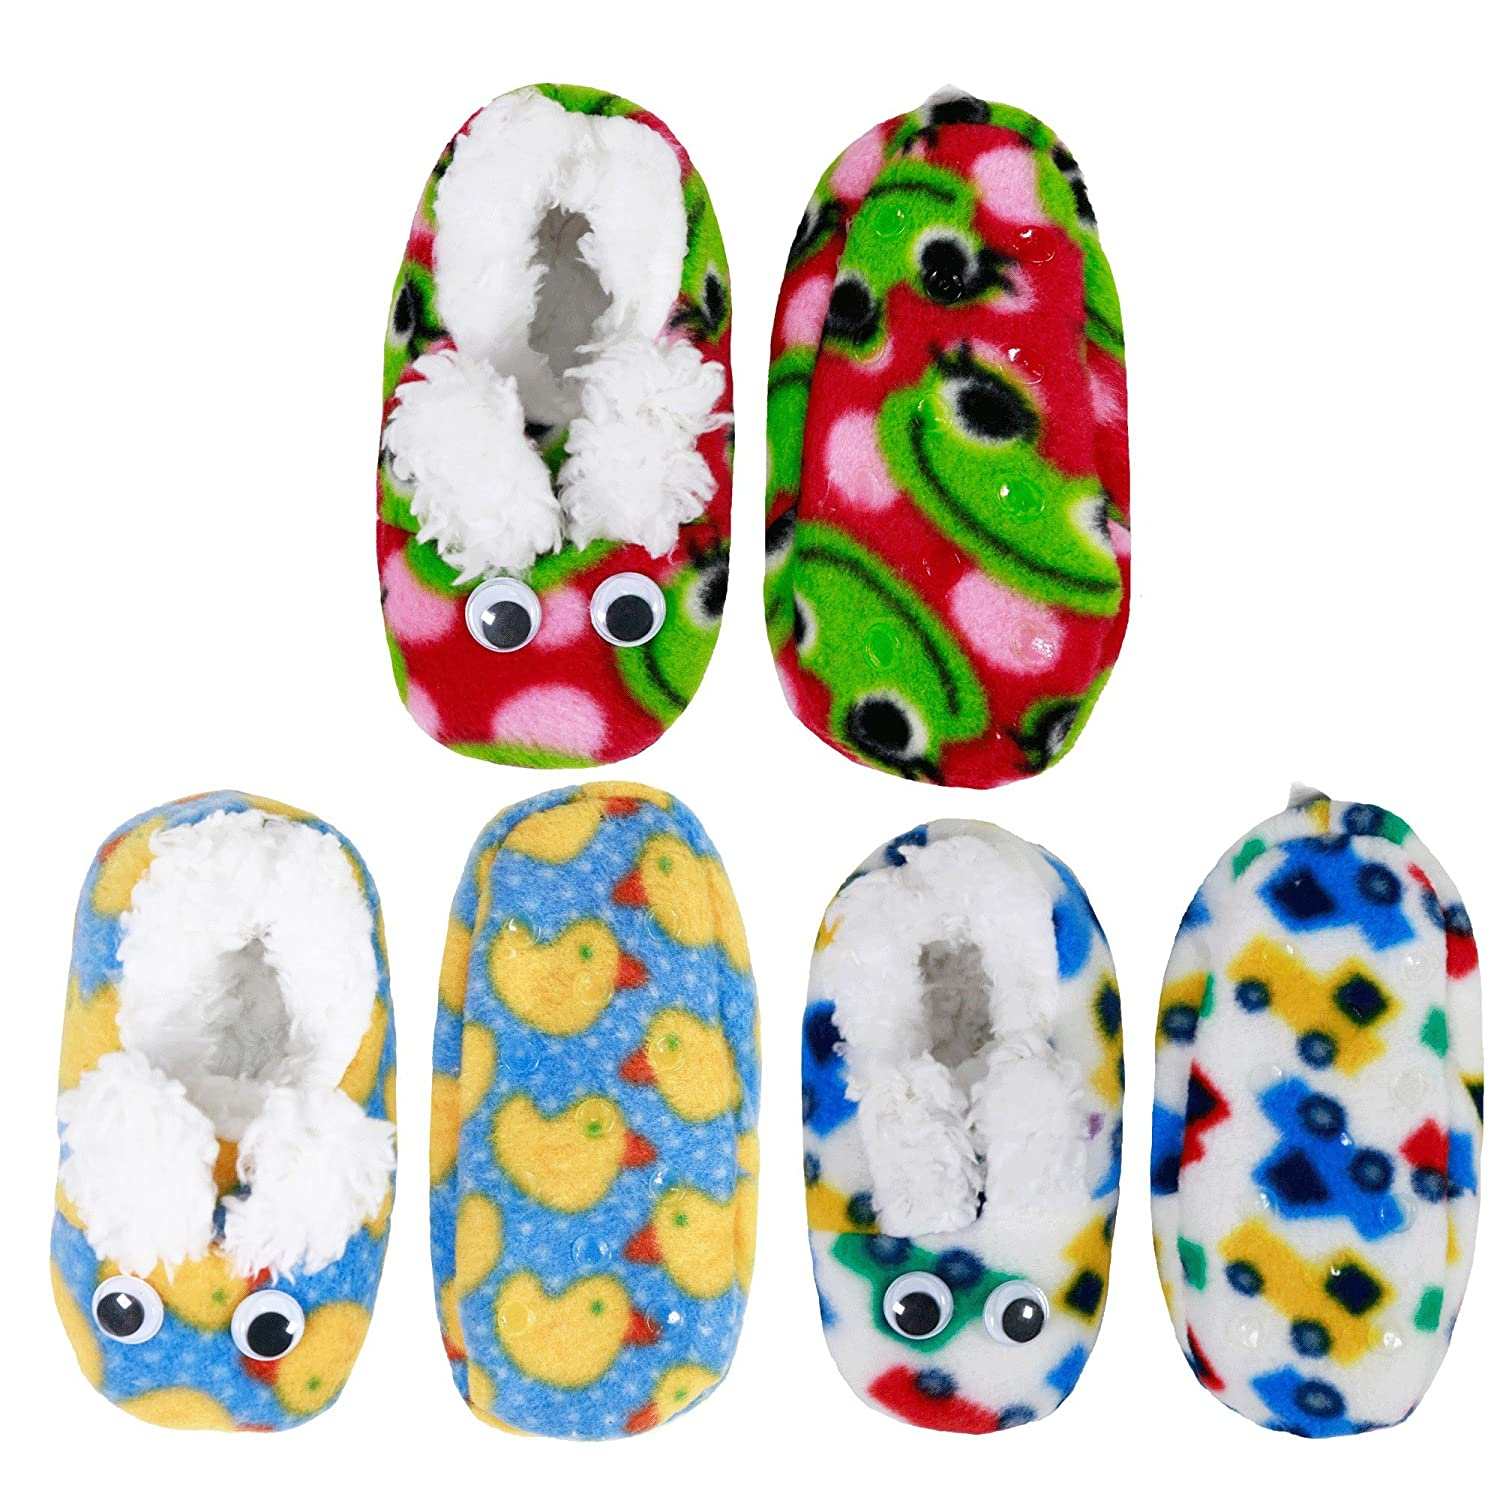 Infants Toddler Soft Warm Plush Cozy Fuzzy Cartoon Animal Slippers Booties Socks Shoes 6955114934687a